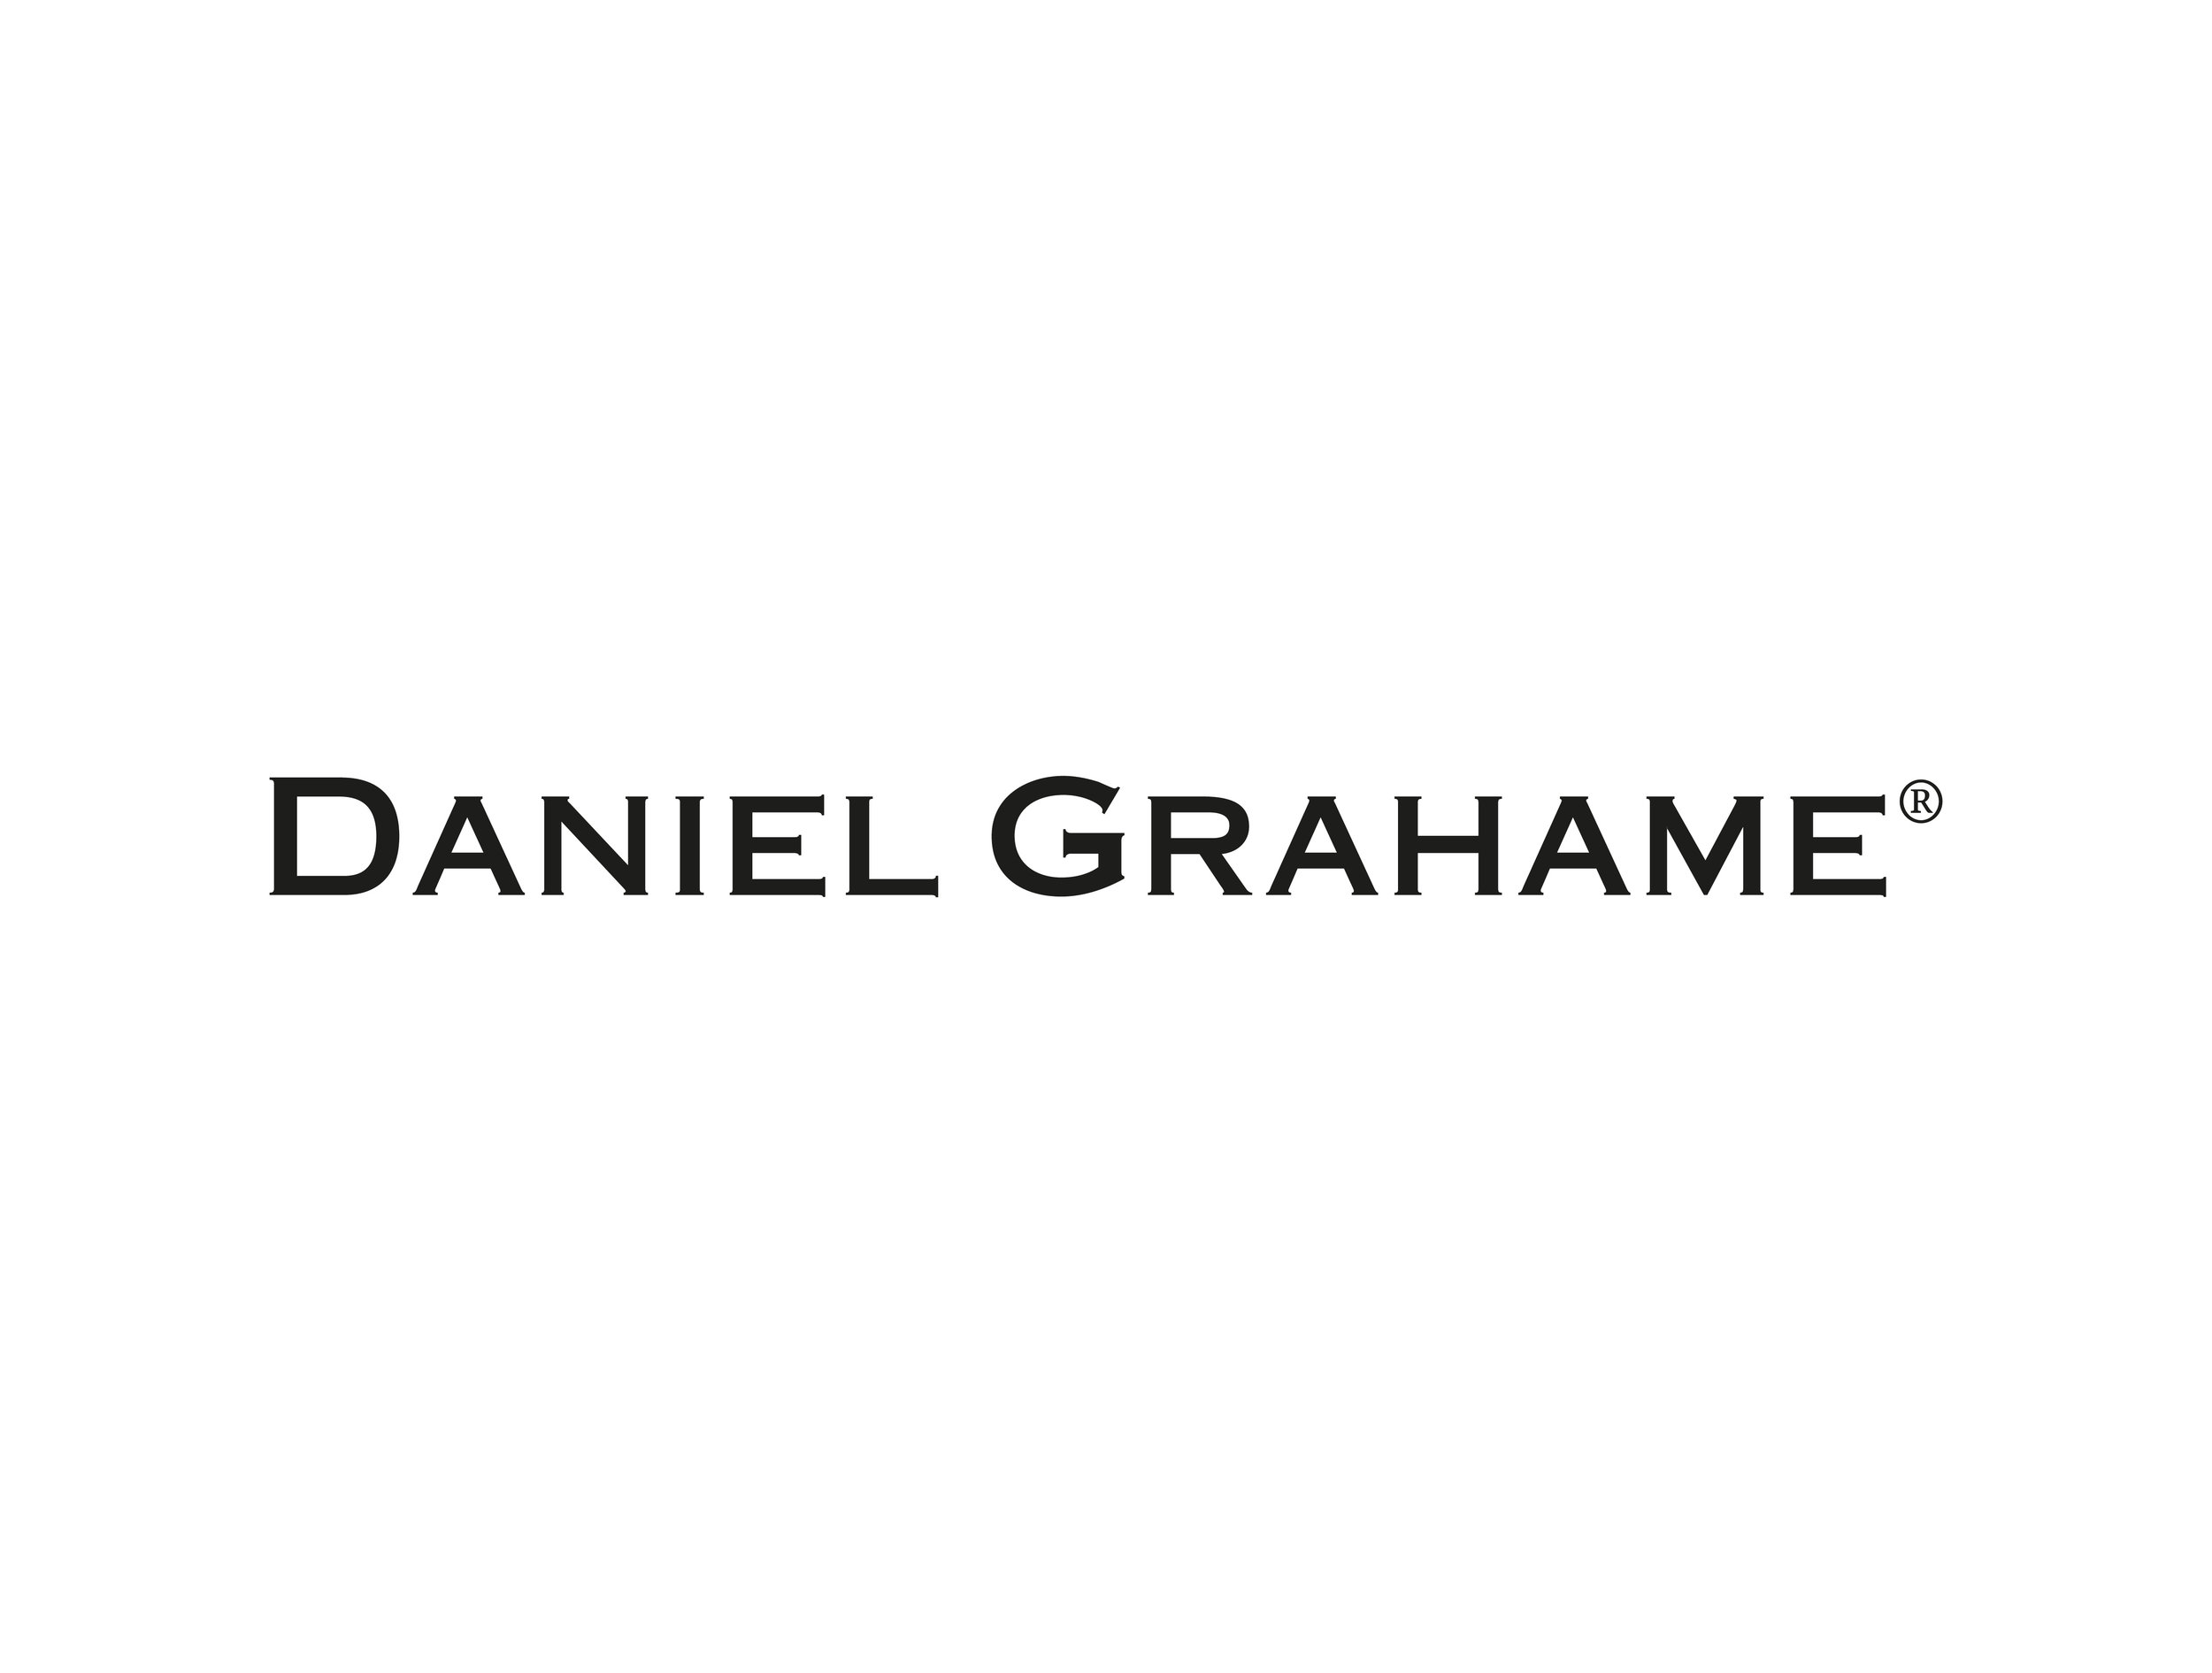 Daniel Grahame Logo Band Row2 Export.jpg